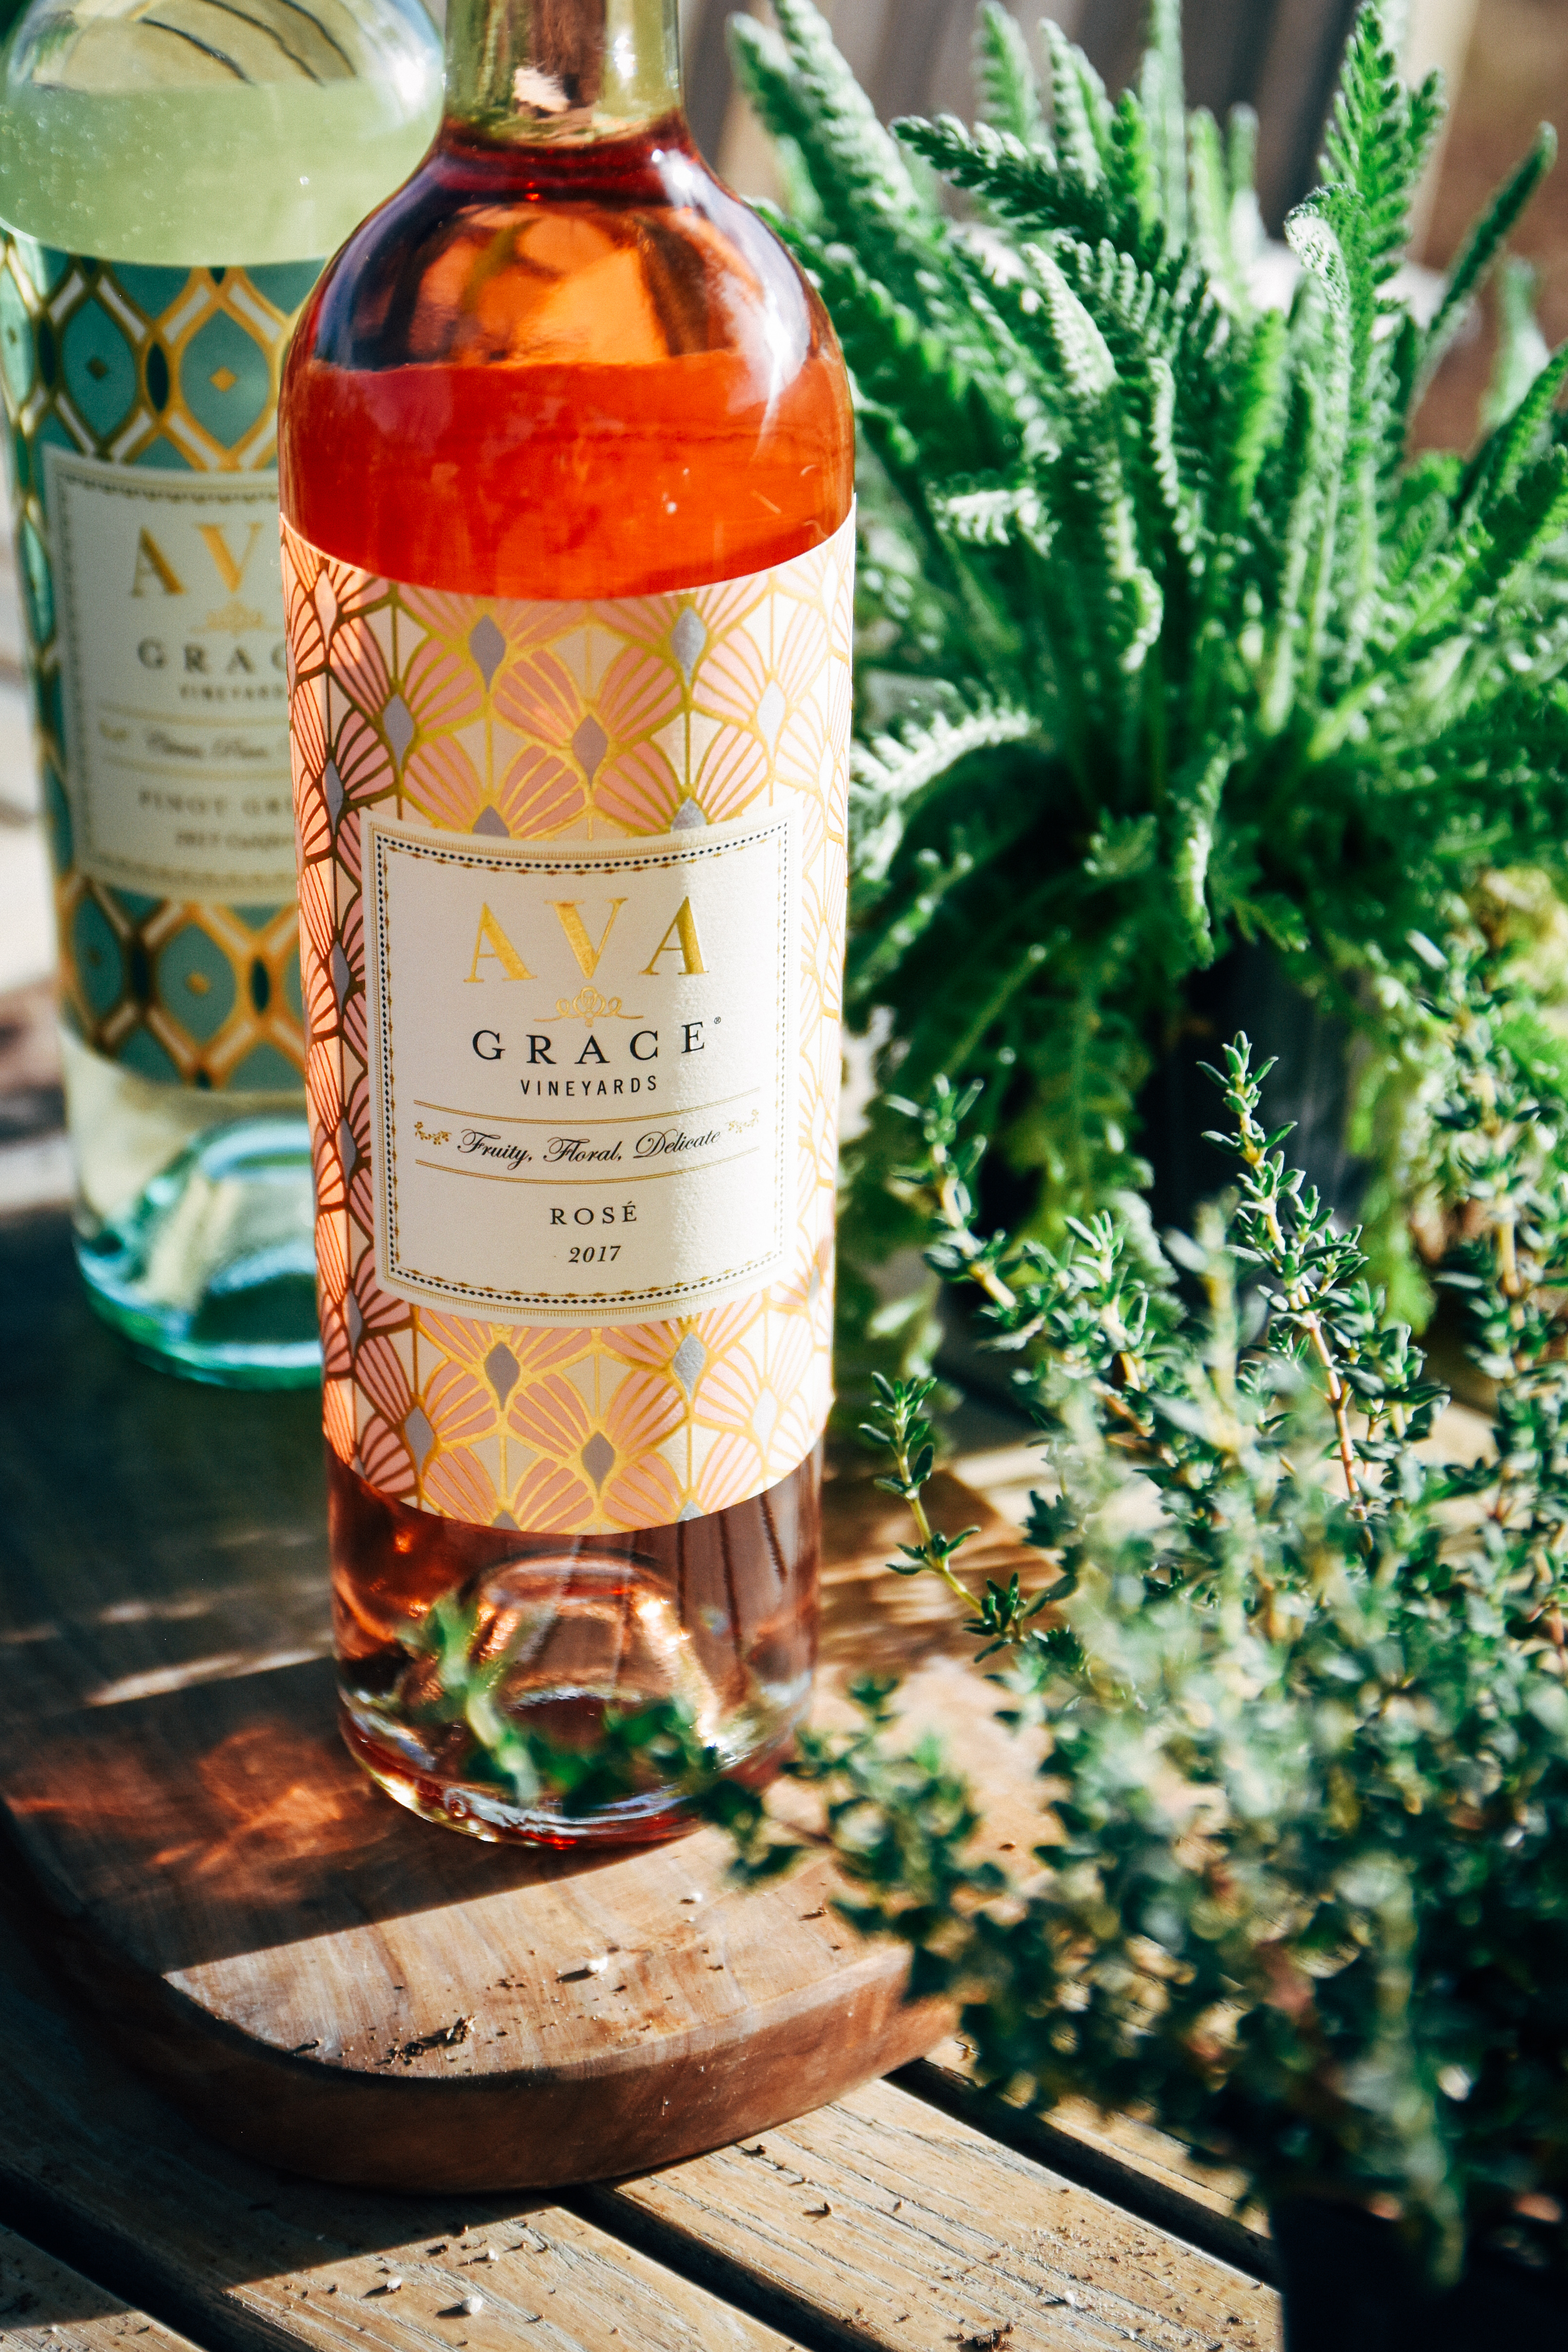 Tasting Through Rose Pinot Grigio With Ava Grace Planting The